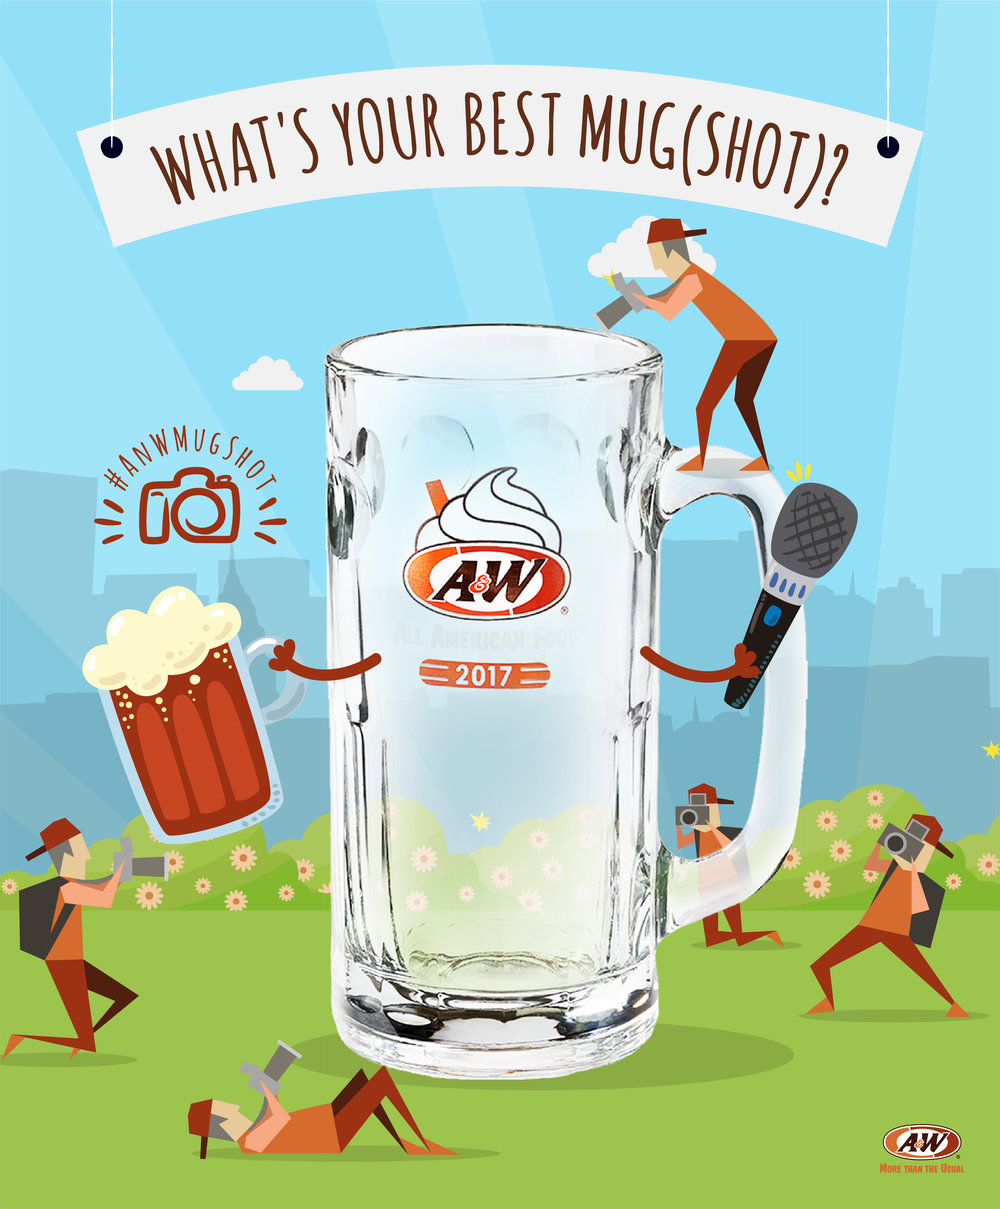 A&W_FB_Oct_RB+Mug+Campaign_for+A&W-01.jpg